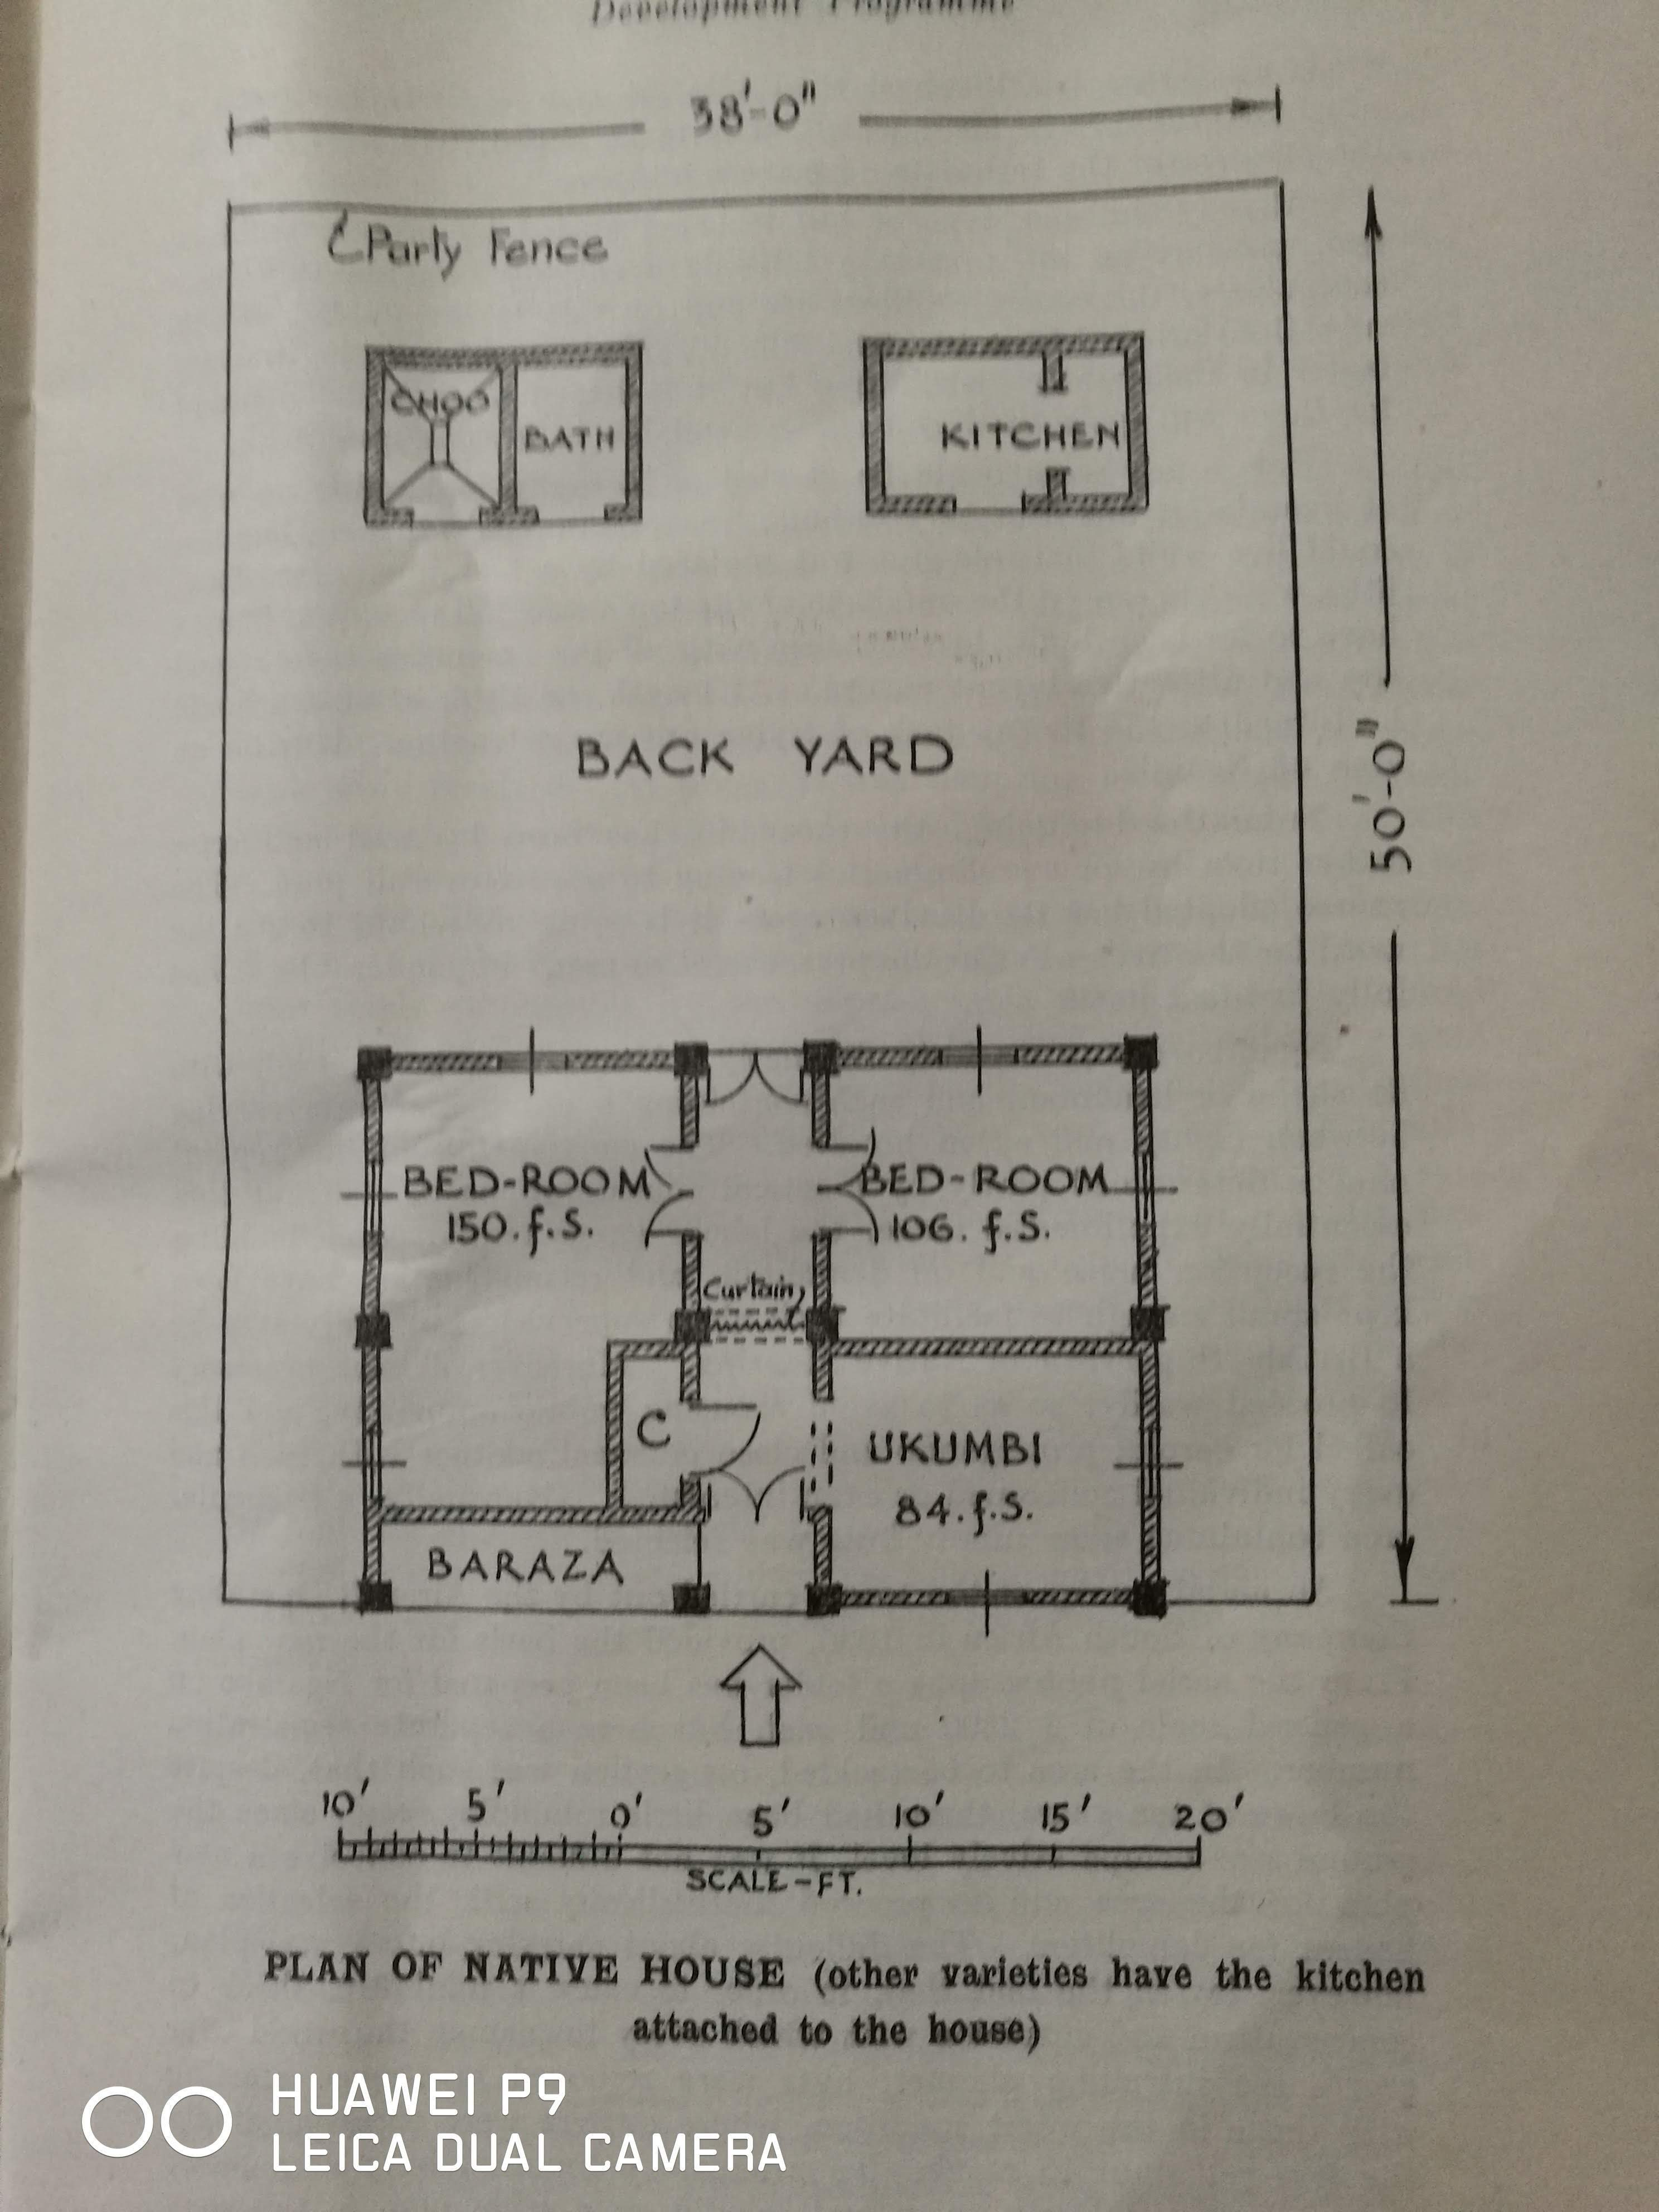 Plan of Native House